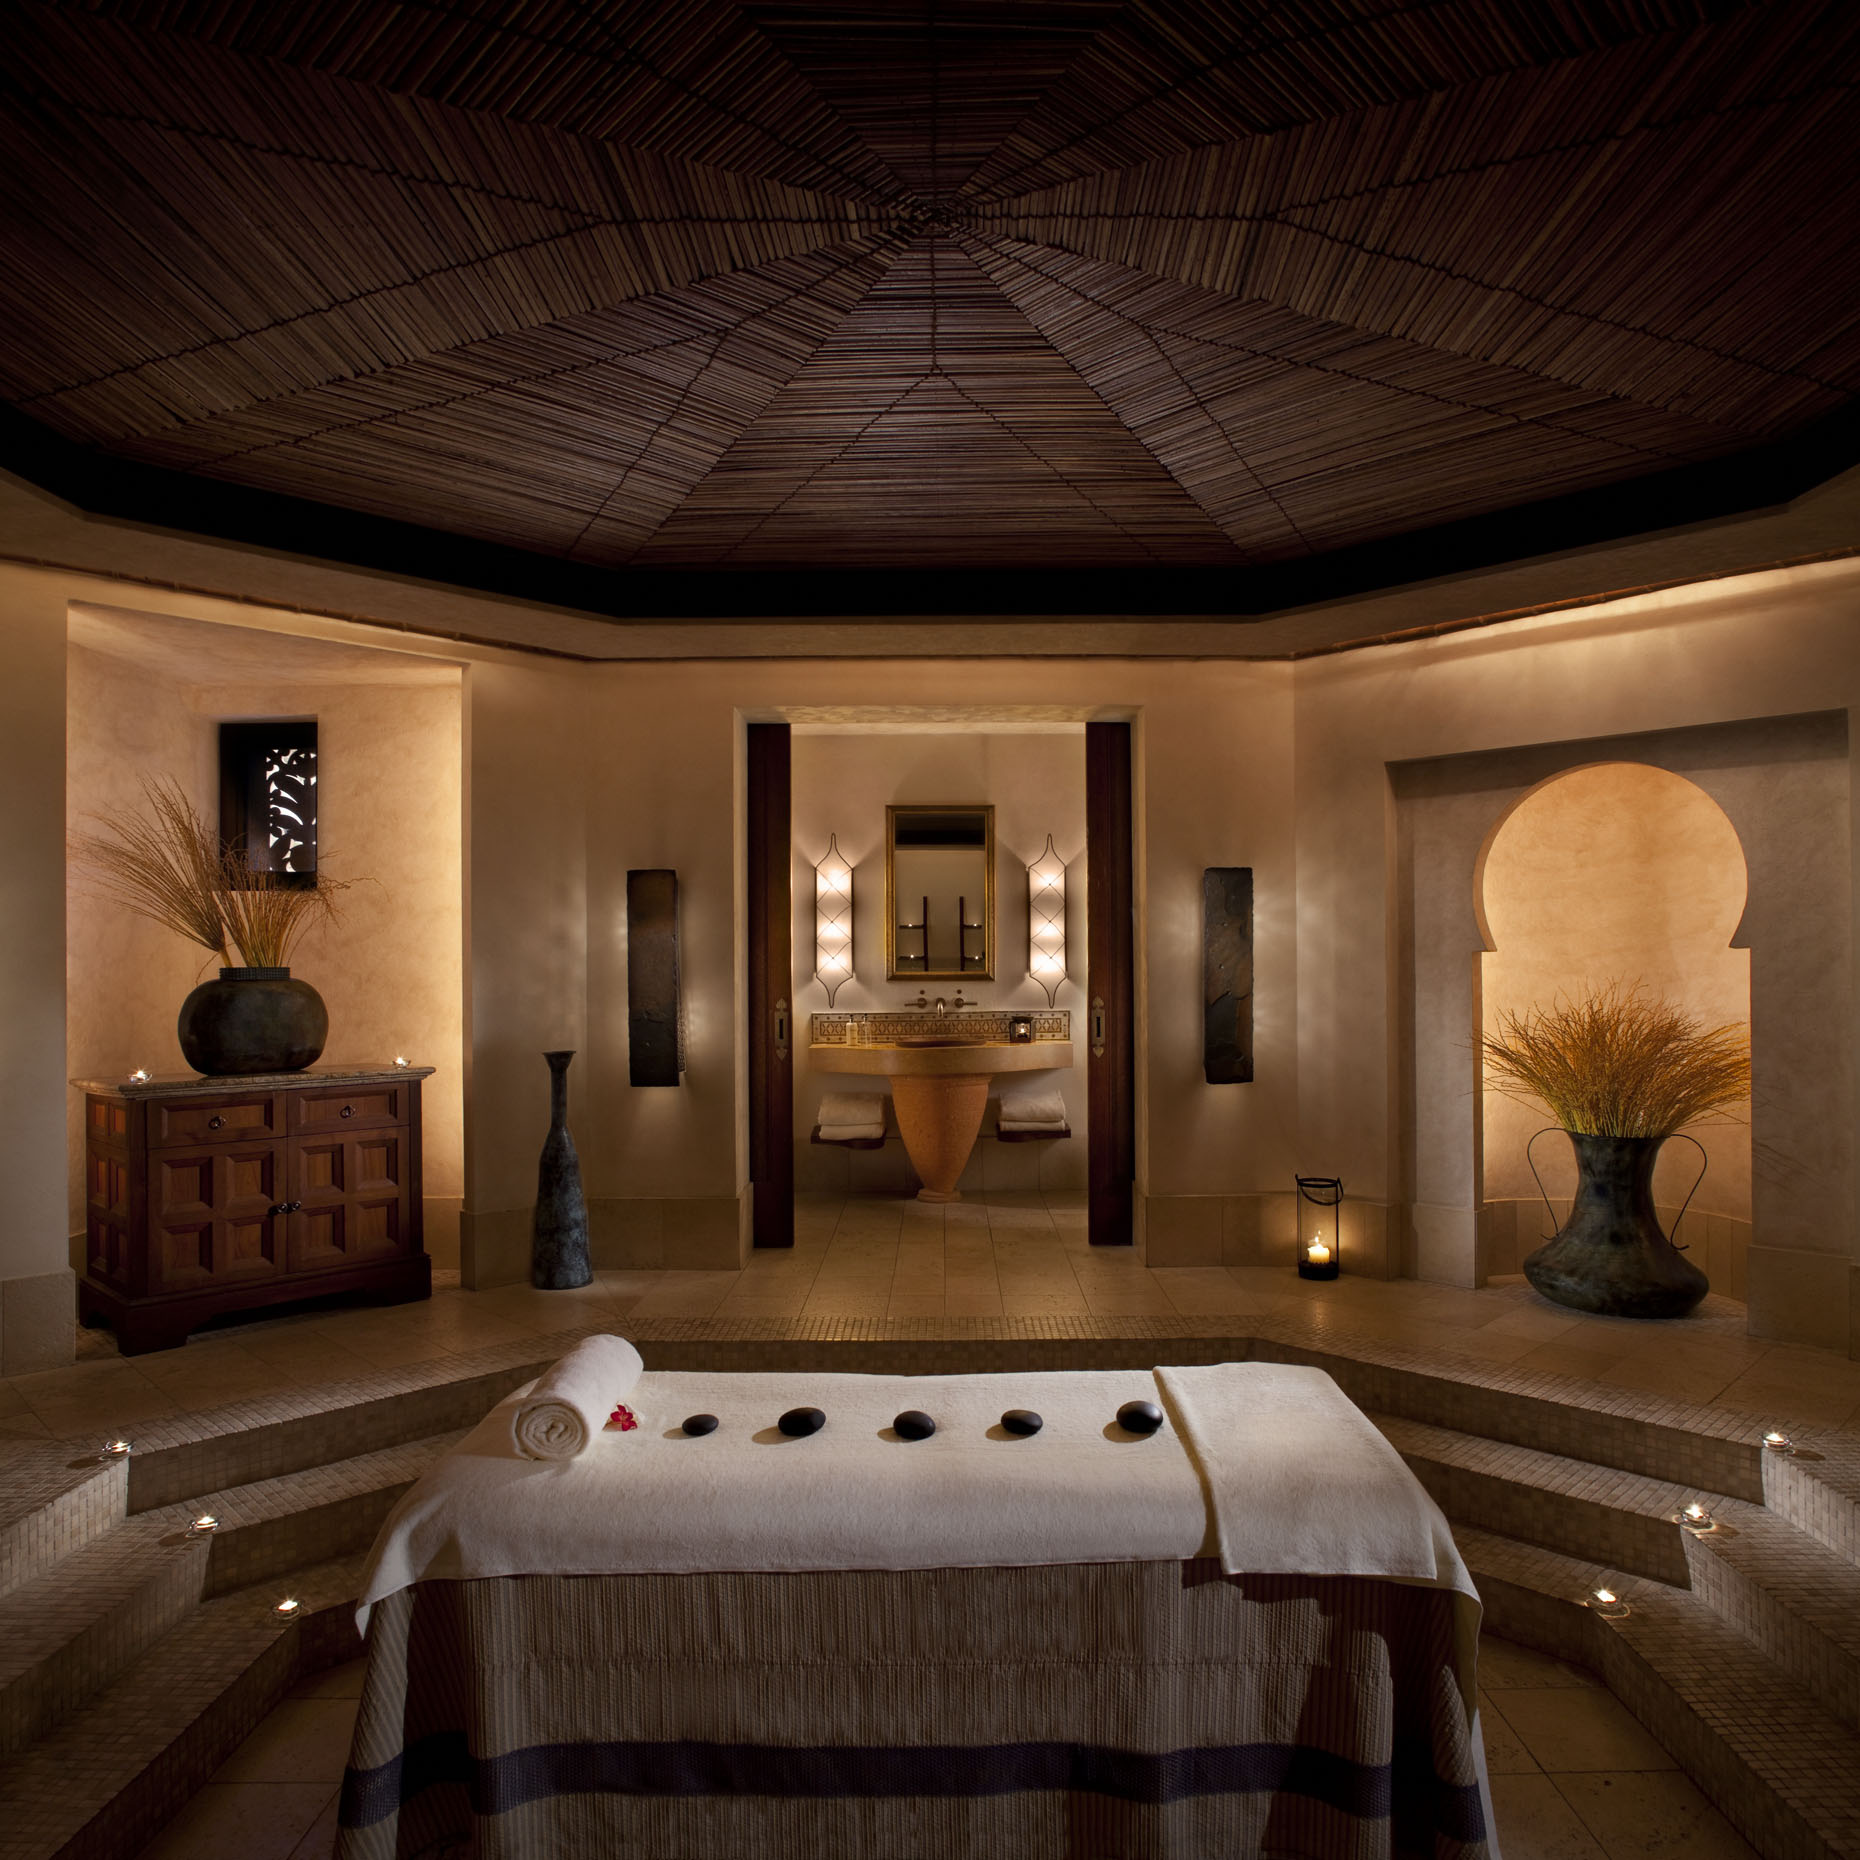 A Jumeirah Al Qasr spa treatment room| Dubai, U.A.E. |